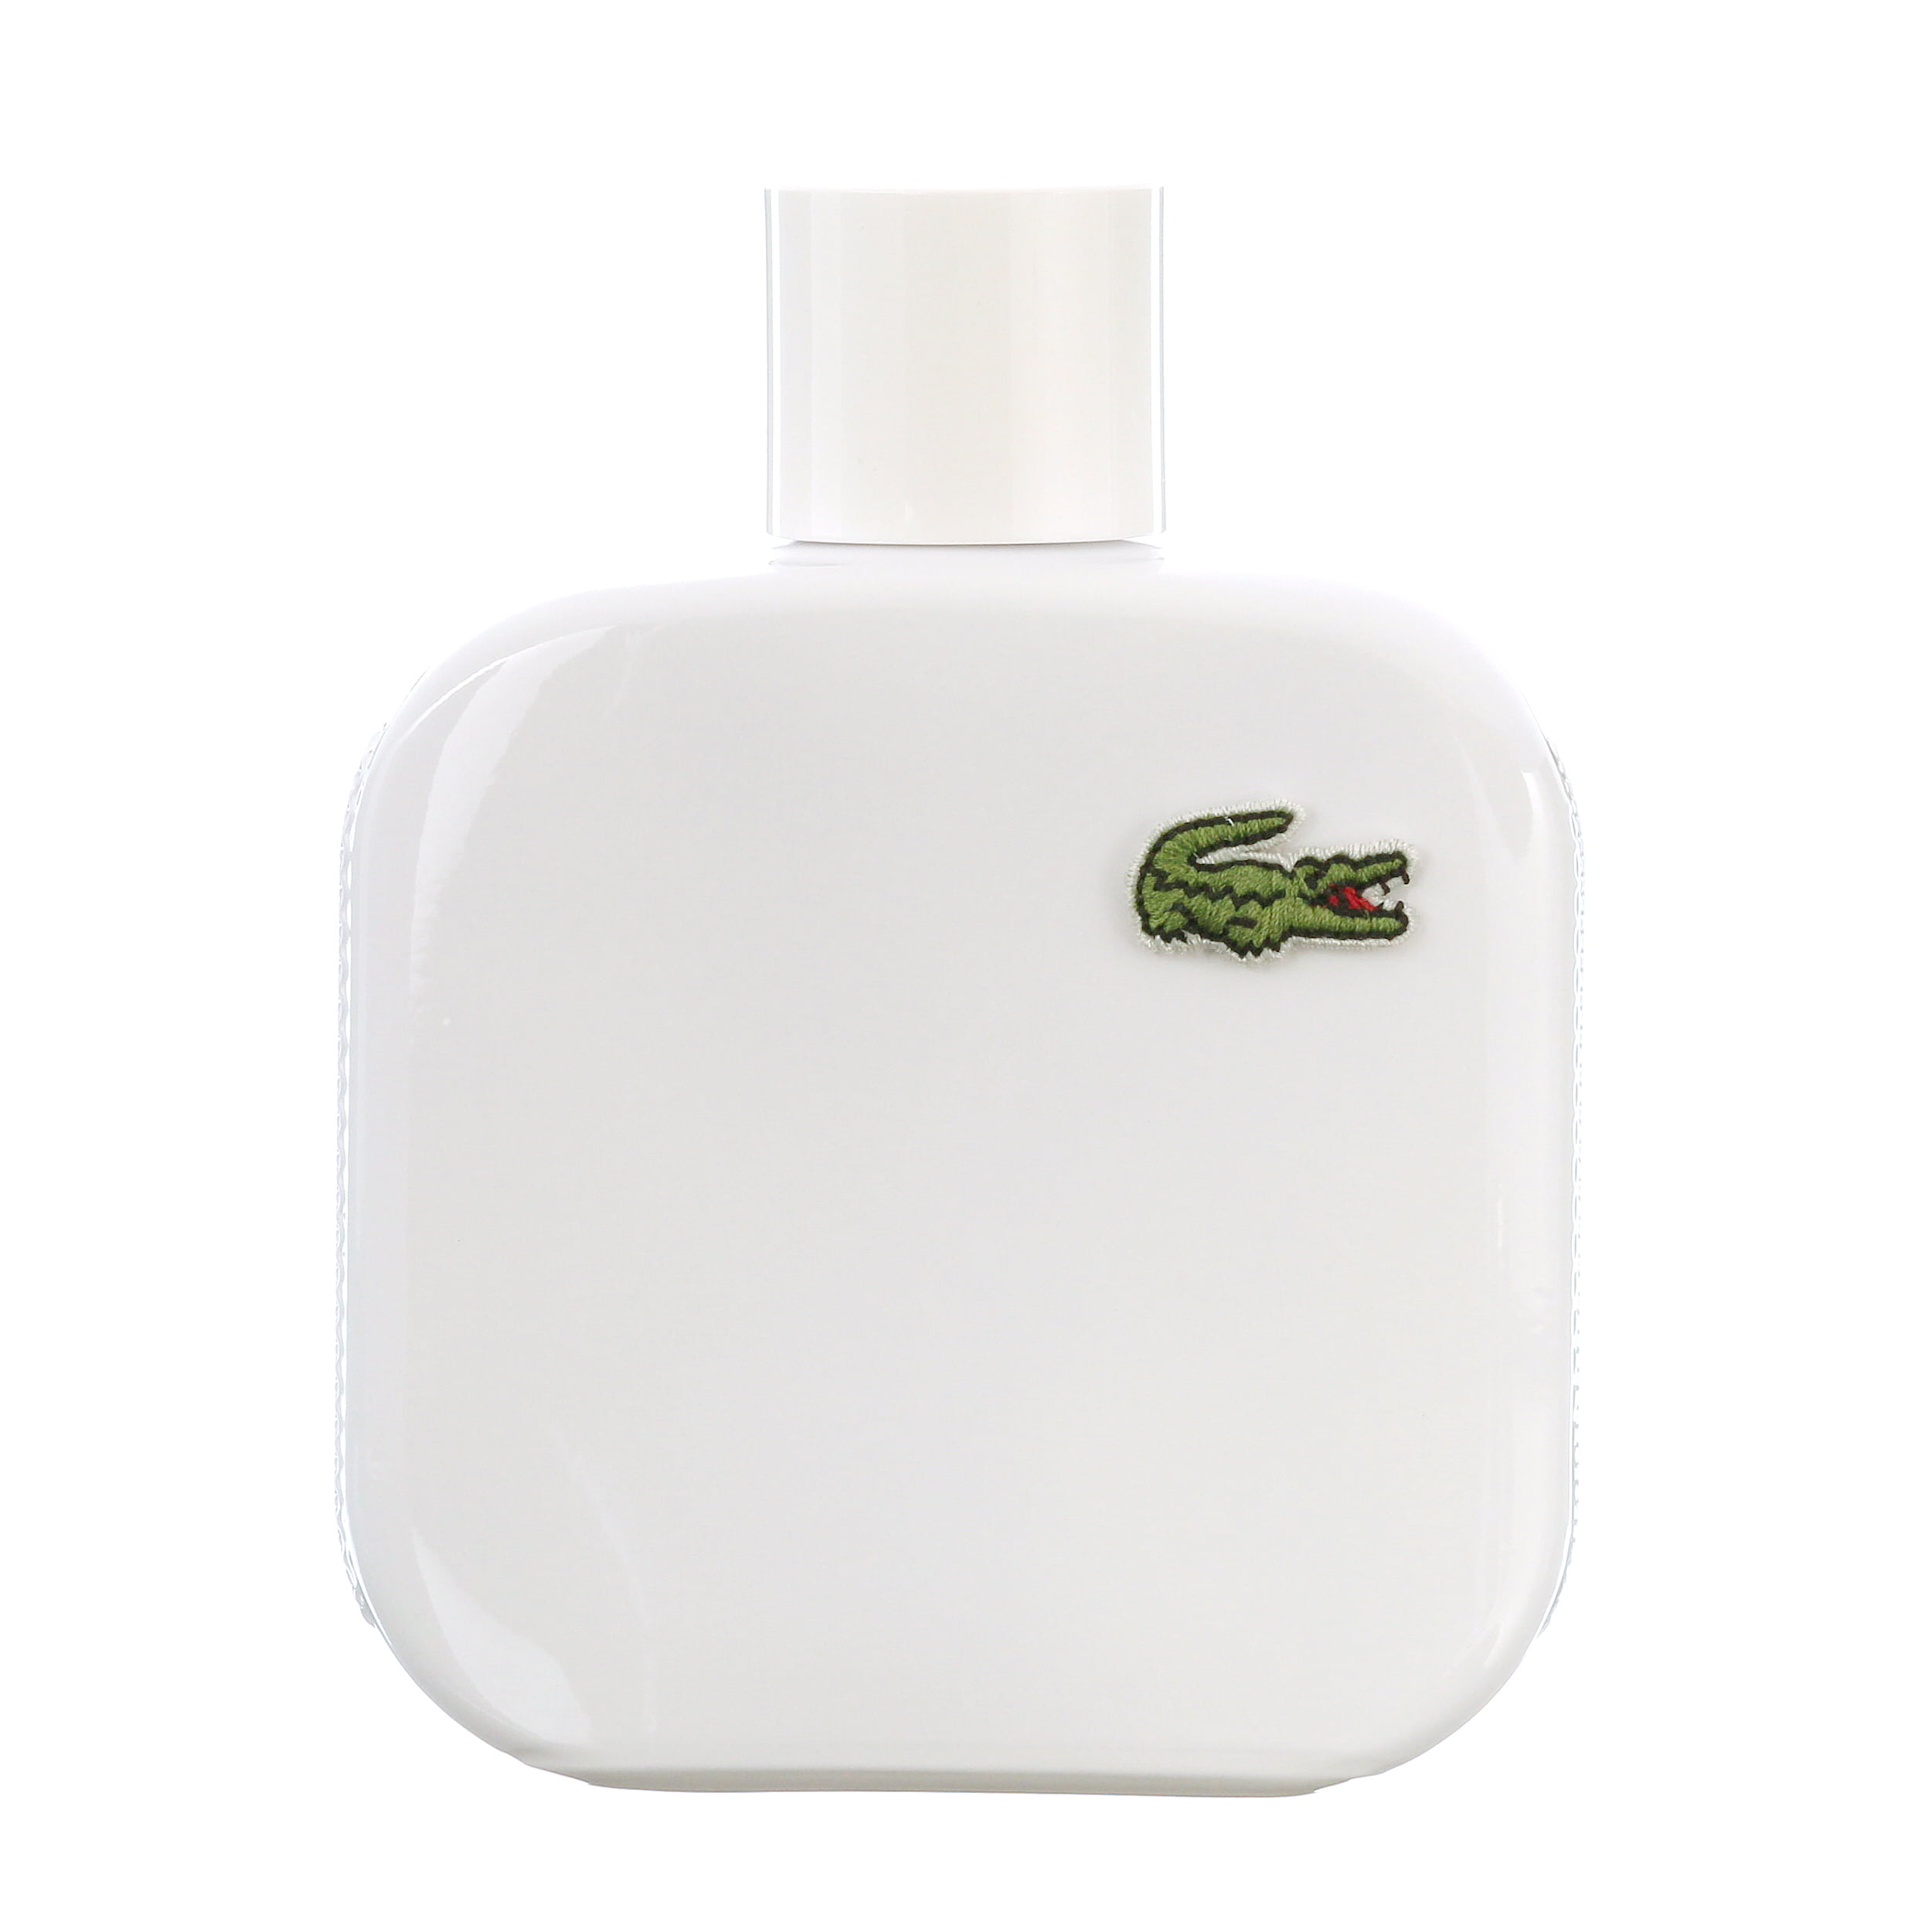 L.12.12 Blanc by Lacoste Eau De Toilette Men's Spray Cologne - 3.3 fl oz